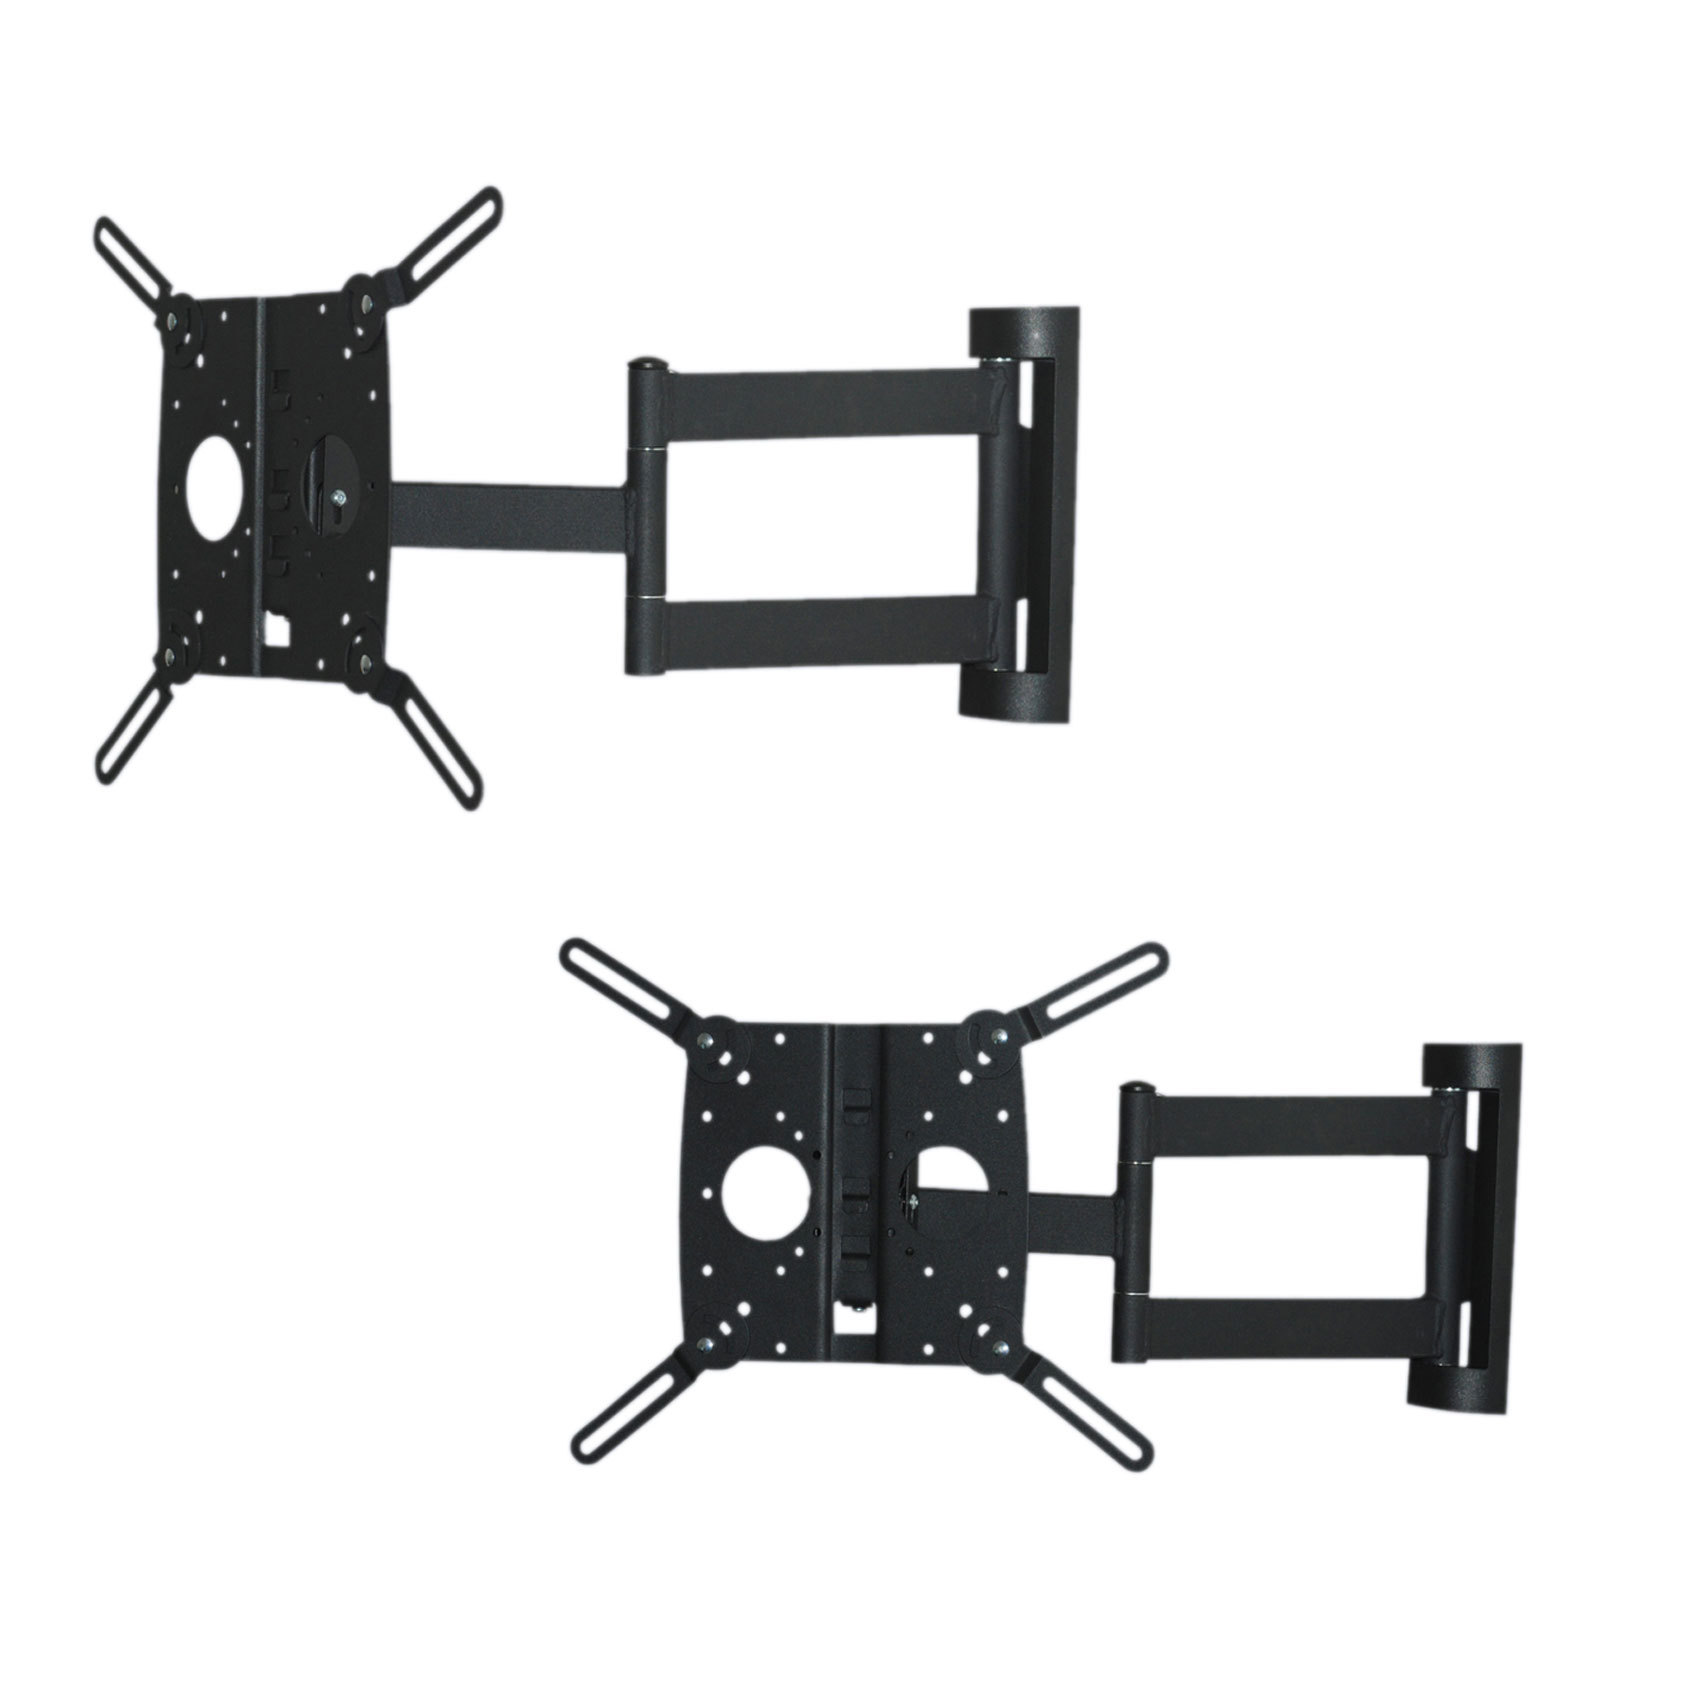 FIRST1 W/B SWIVEL WALL MT BRACKET